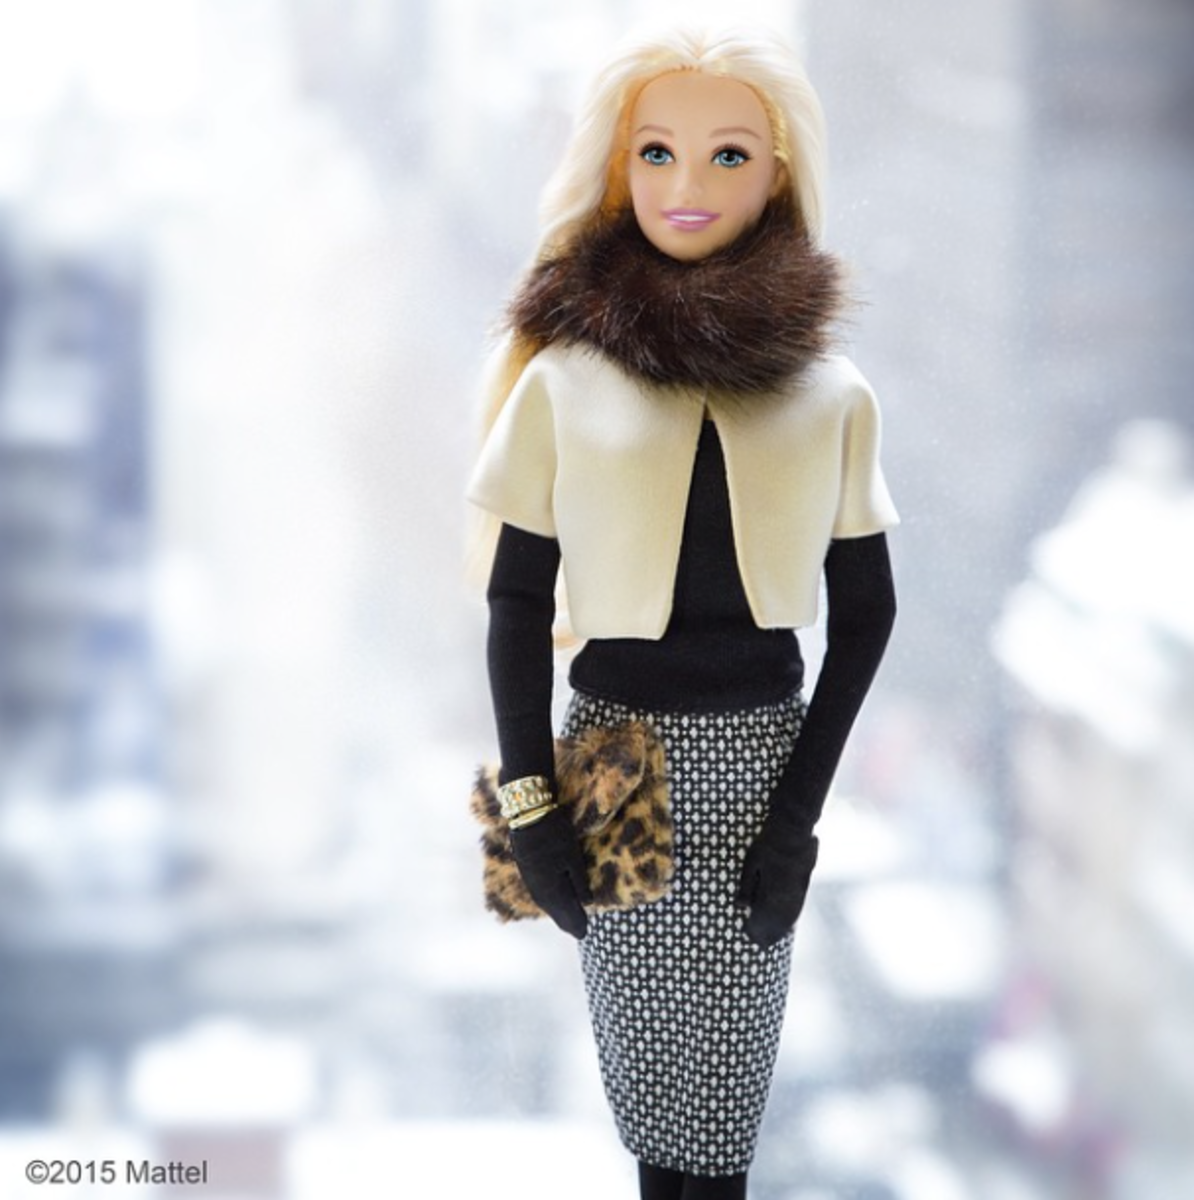 Barbie 39 S Instagram Style Is Being Immortalized In A New Book Fashionista